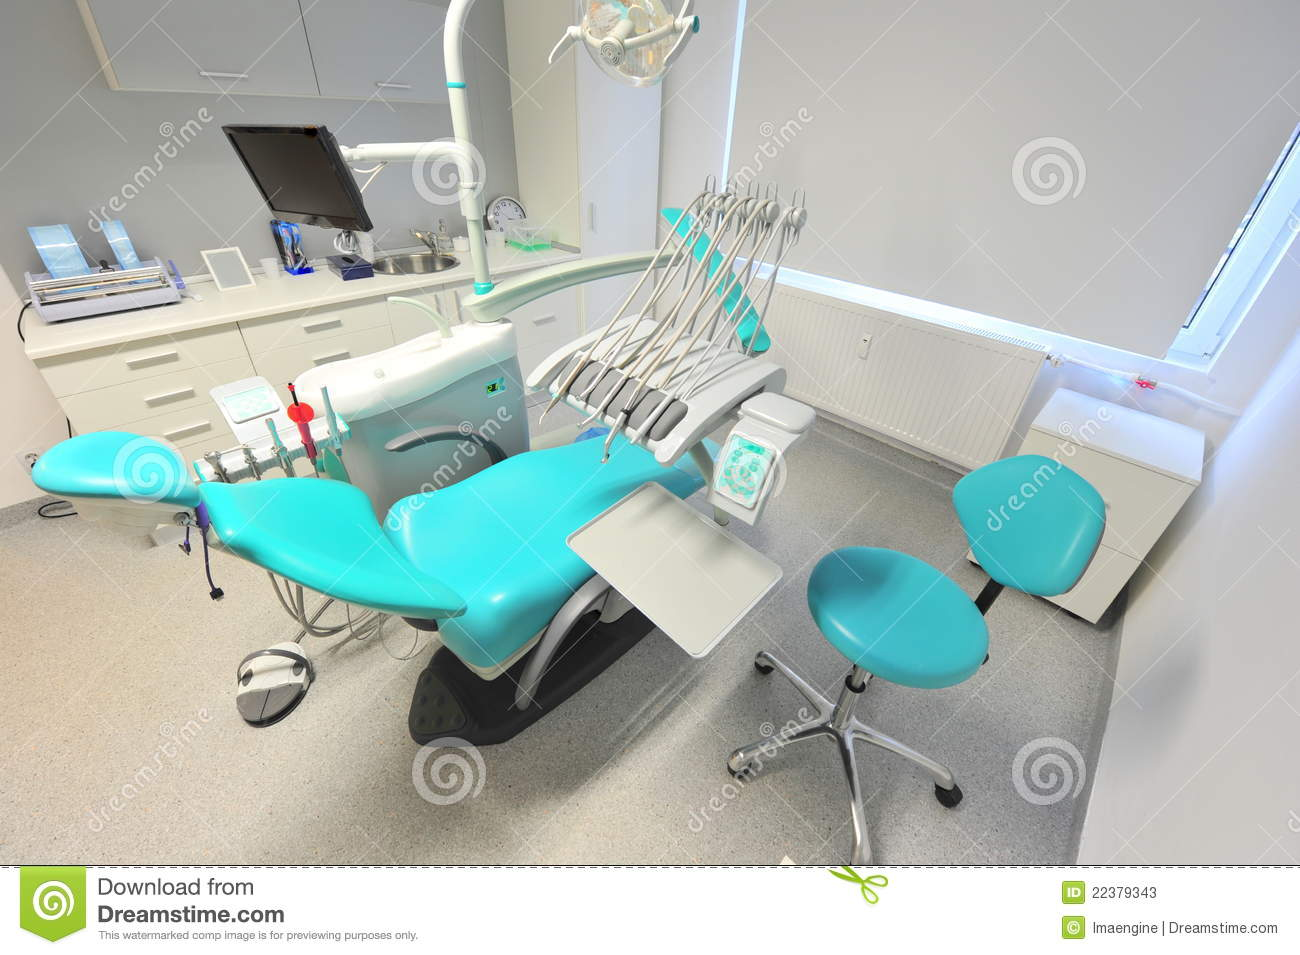 details from a modern dentists office stock photos - image: 22379343